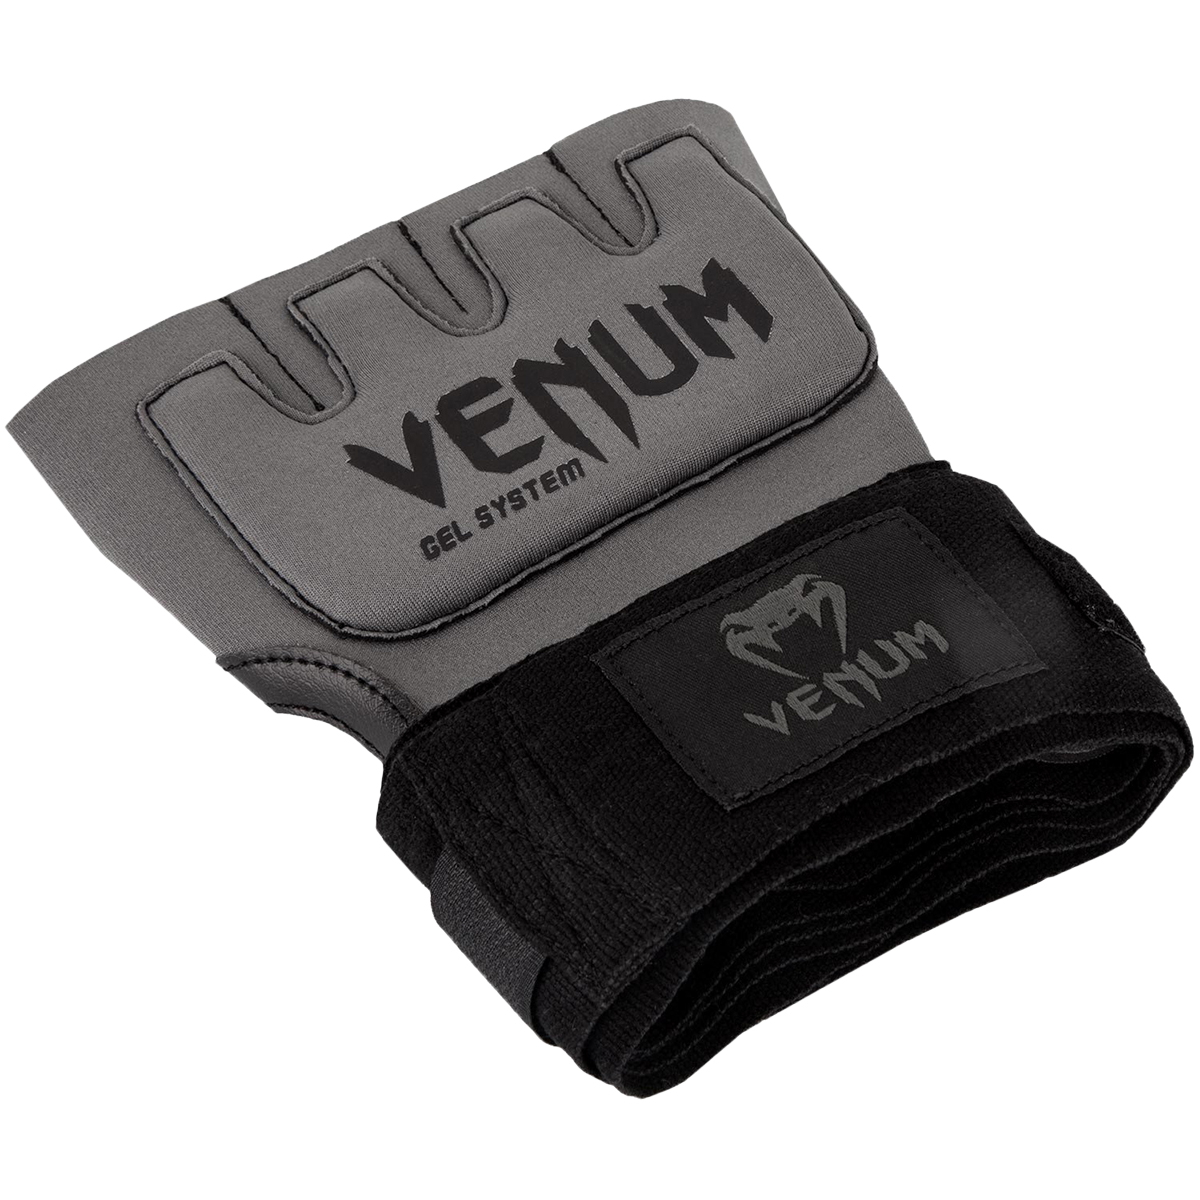 Venum-Kontact-Protective-Shock-Absorbing-Gel-MMA-Glove-Wraps thumbnail 20